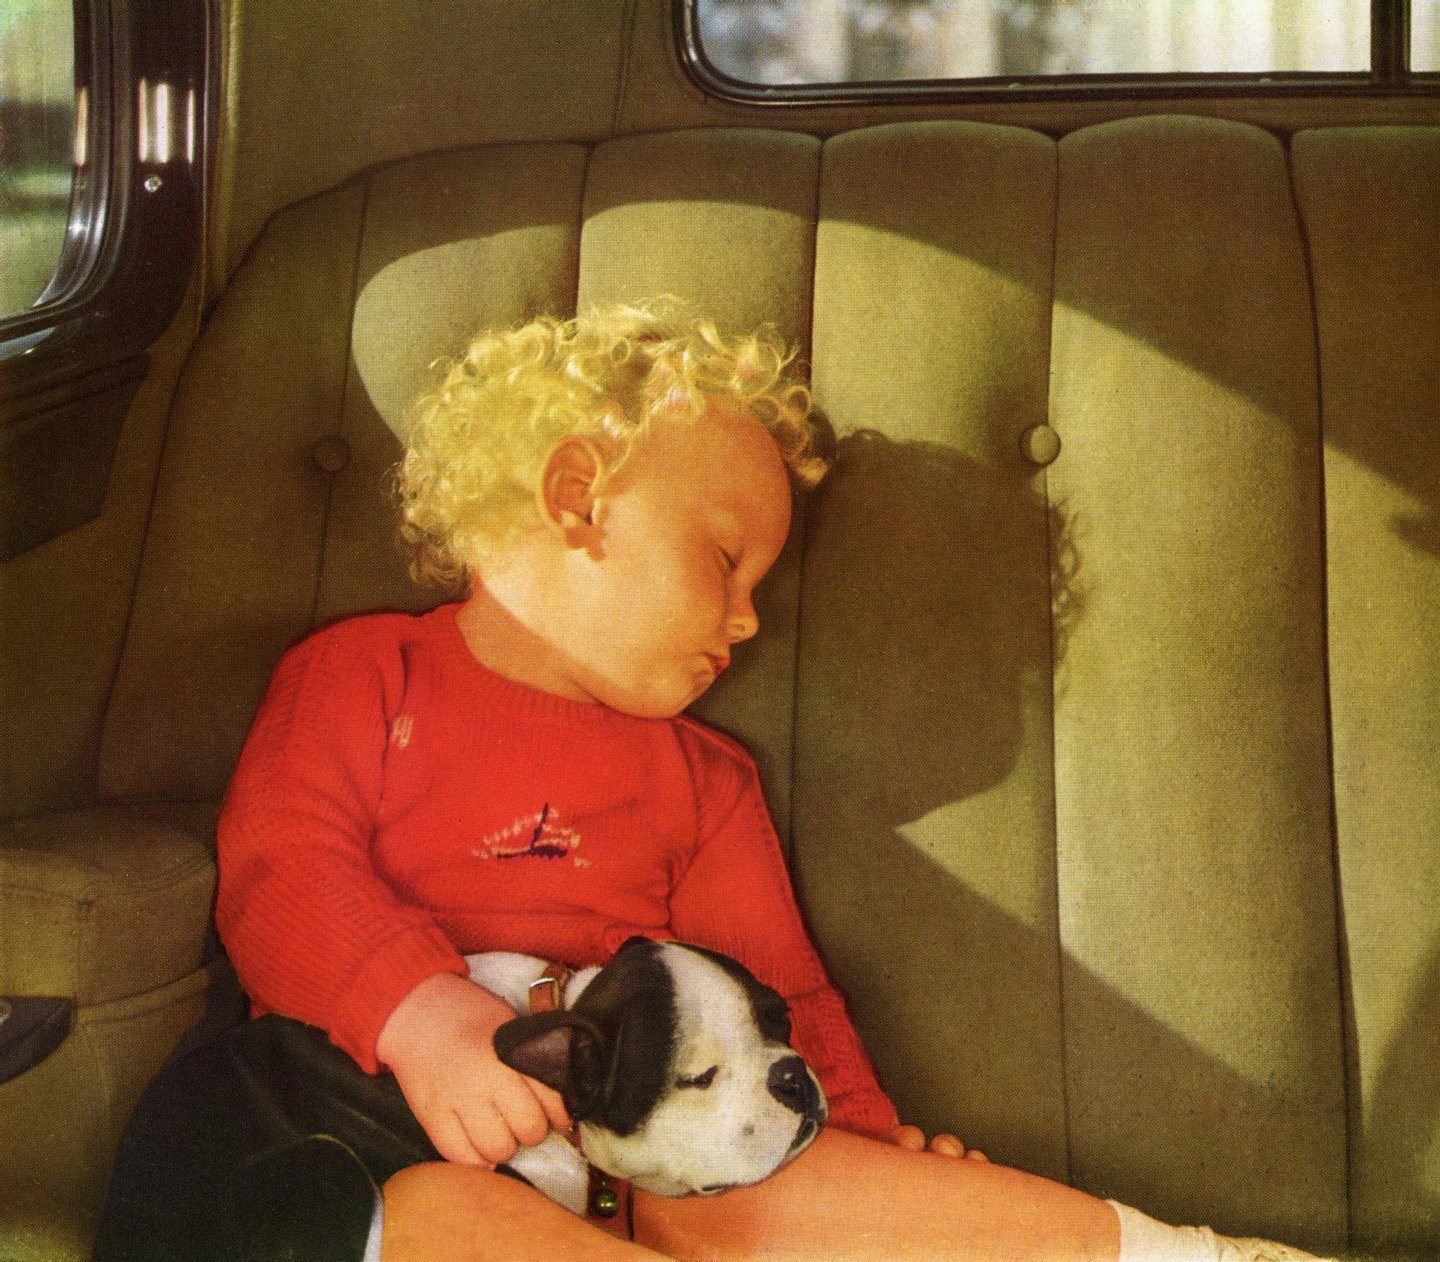 Vintage illustration of a blond little boy sleeping with his dog in the back seat of a car, 1930s. Screen print. (Illustration by GraphicaArtis/Getty Images)